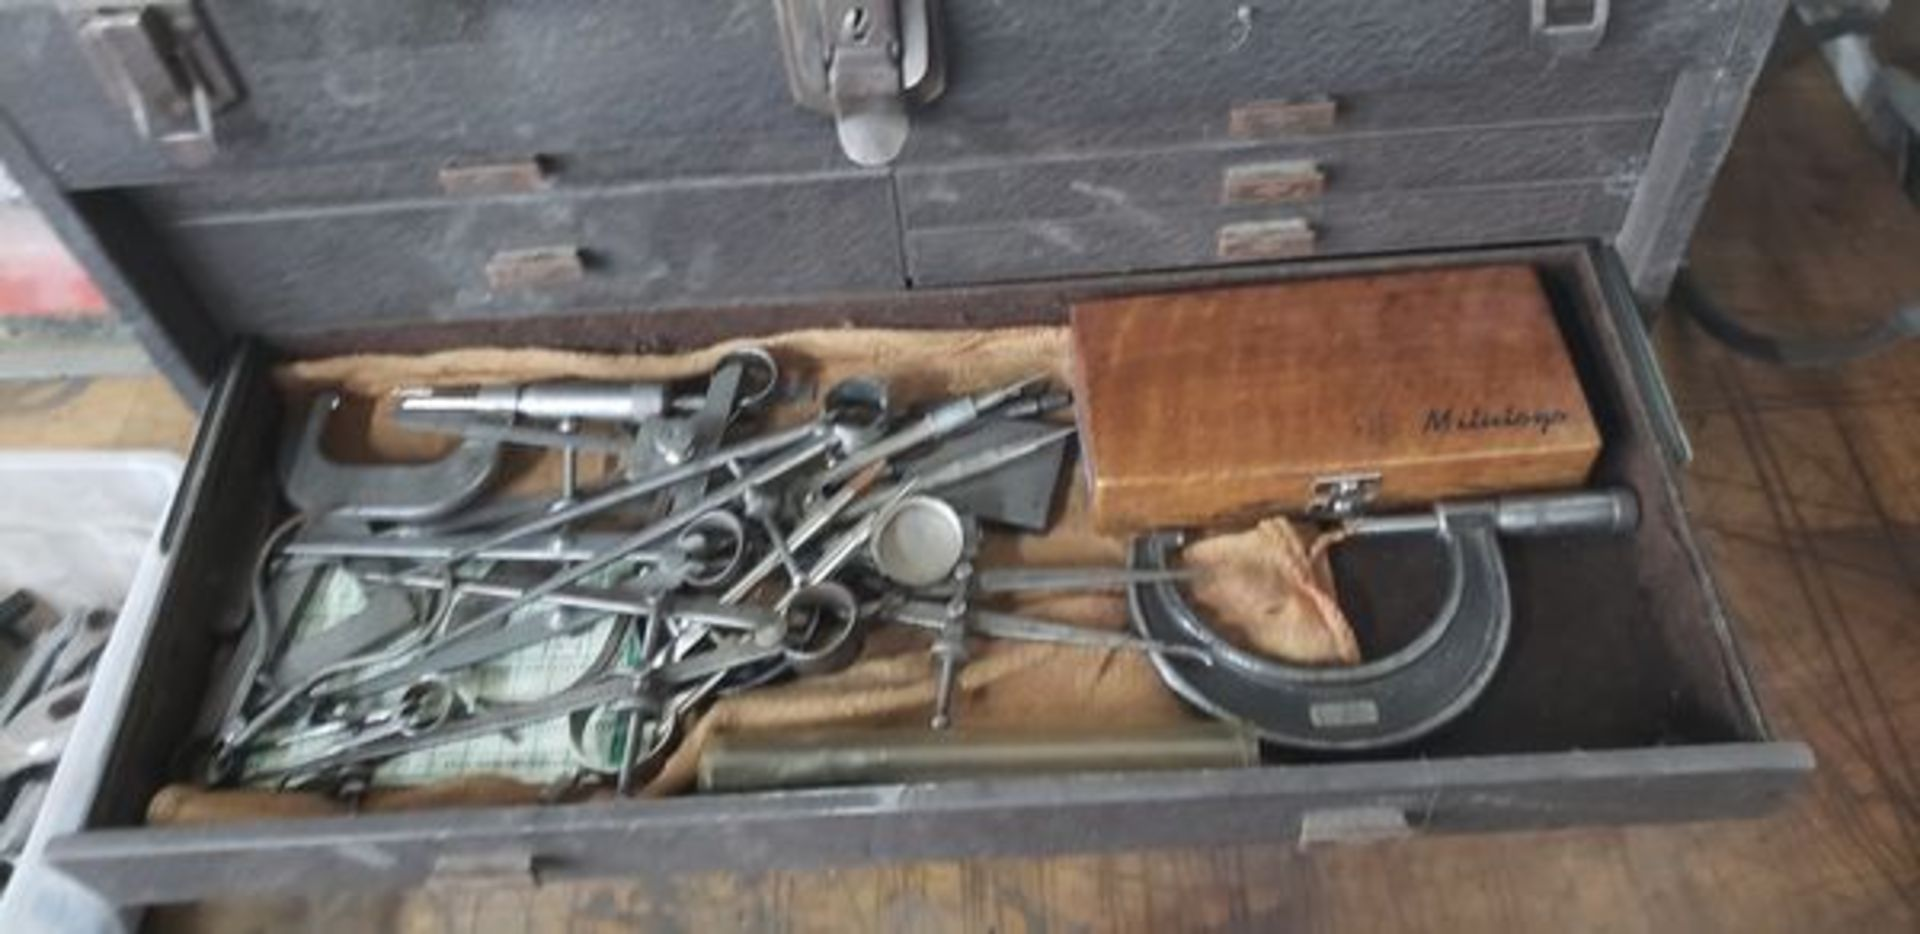 KENNEDY MACHINIST TOOL CHEST WITH CONTENTS - Image 10 of 11